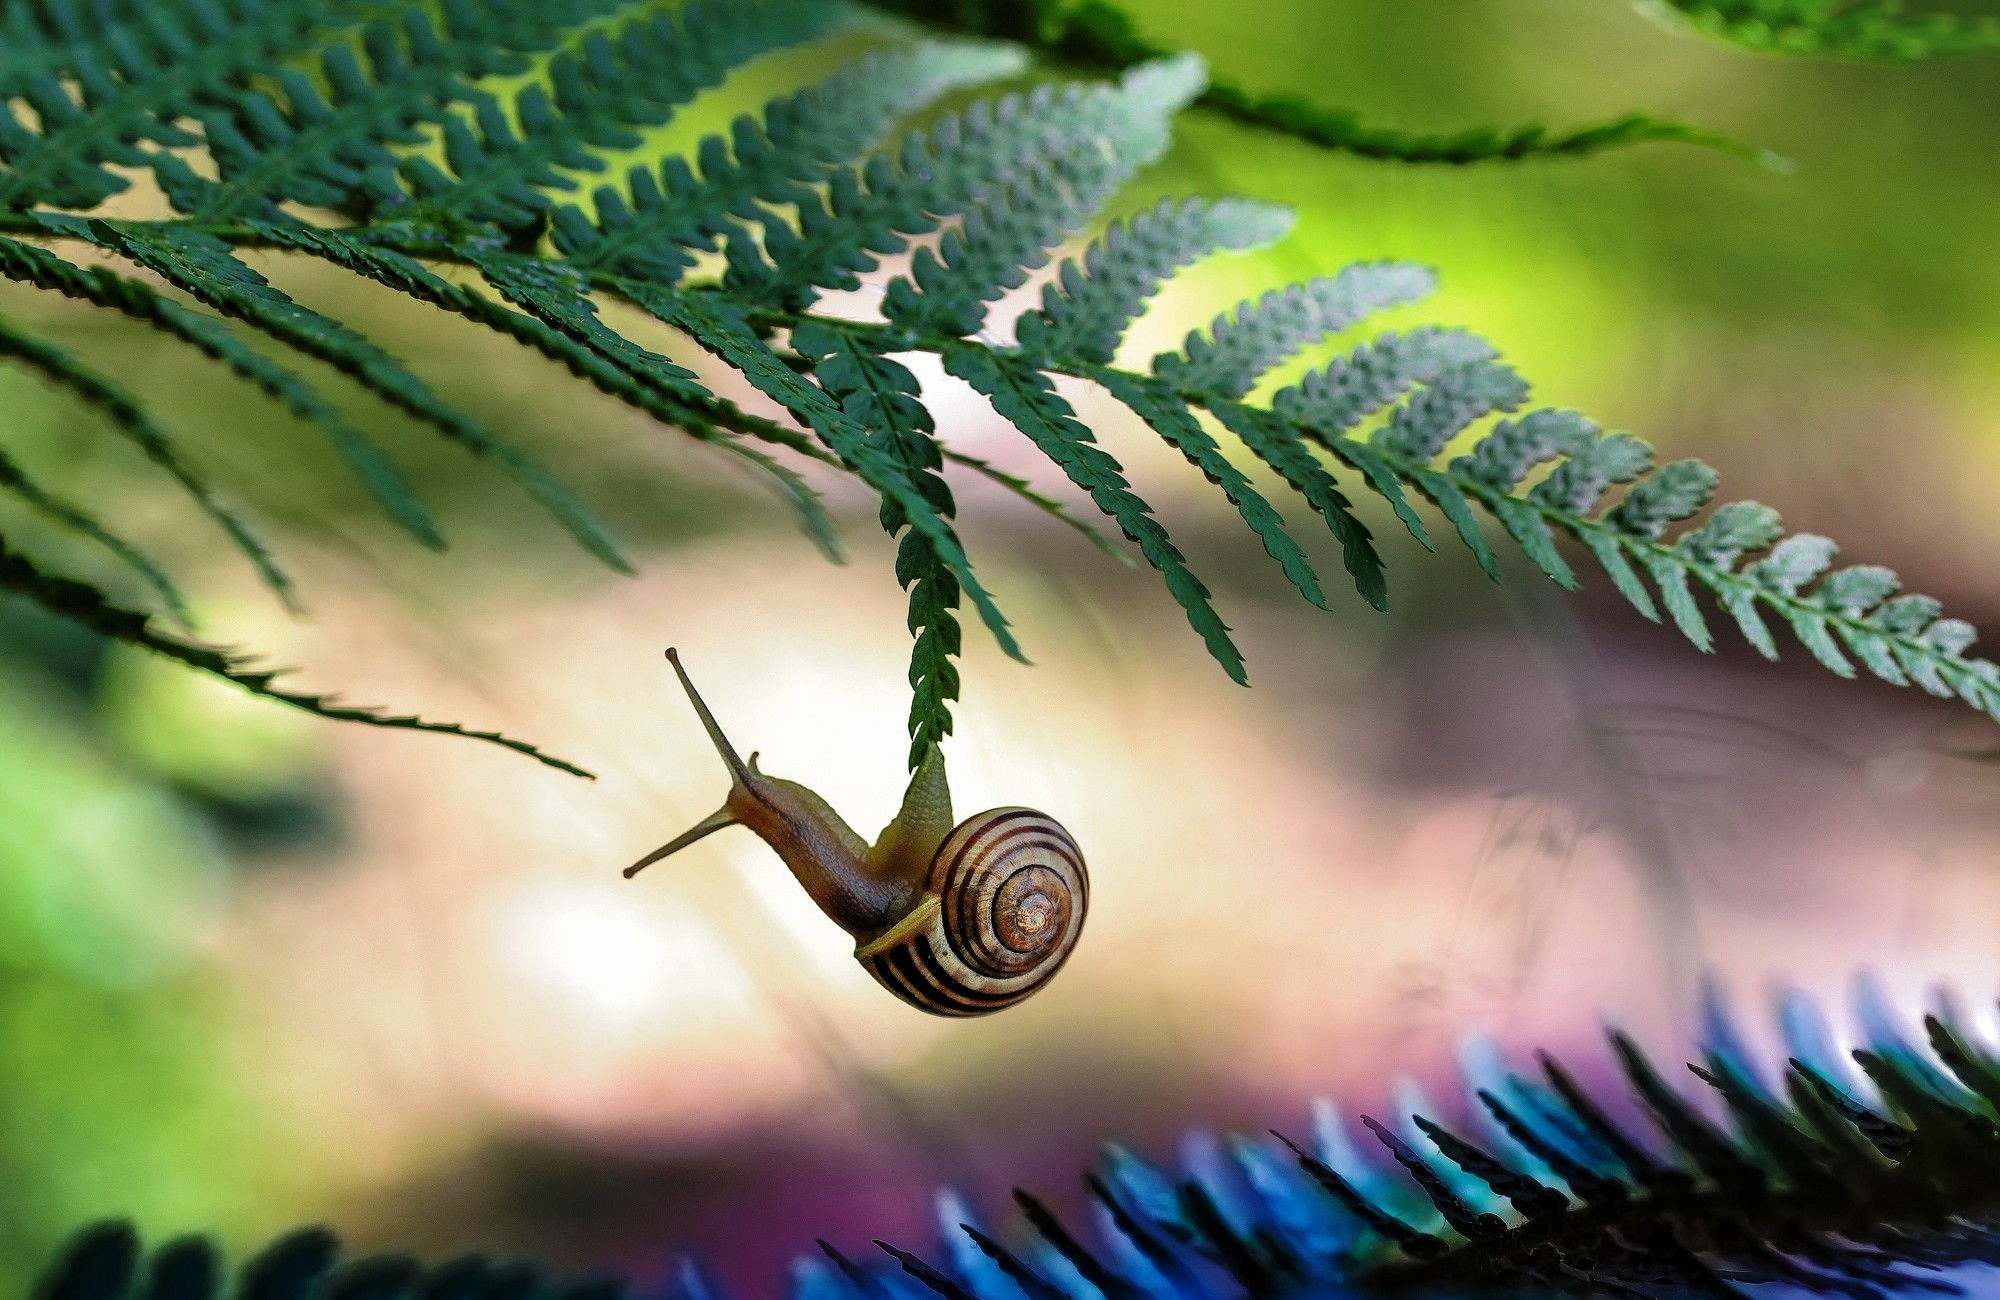 36 excellent hd snail wallpapers